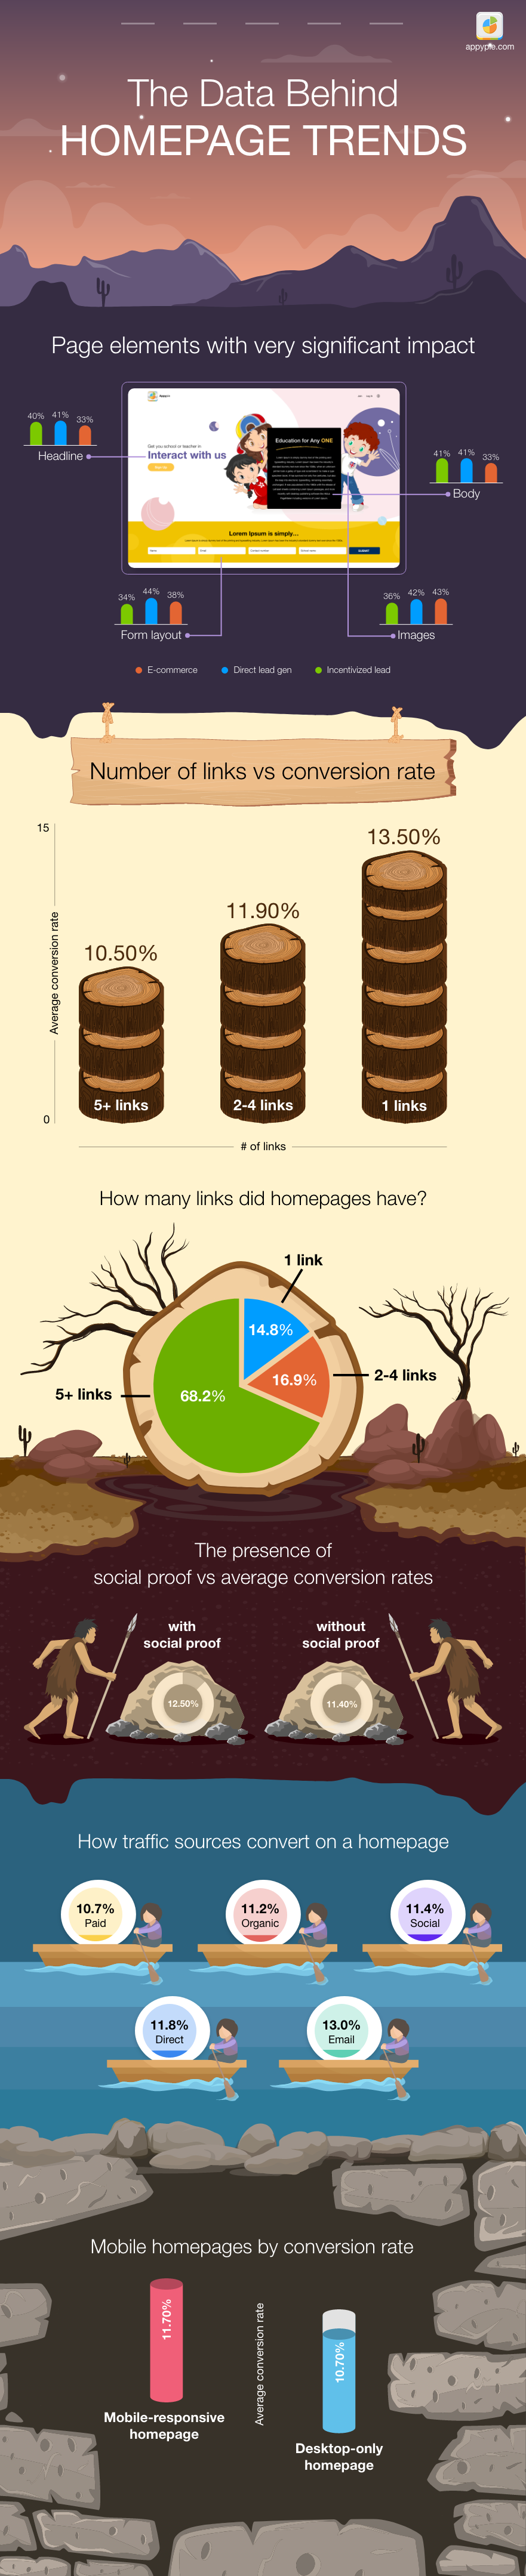 The Data Behind Homepage Trends